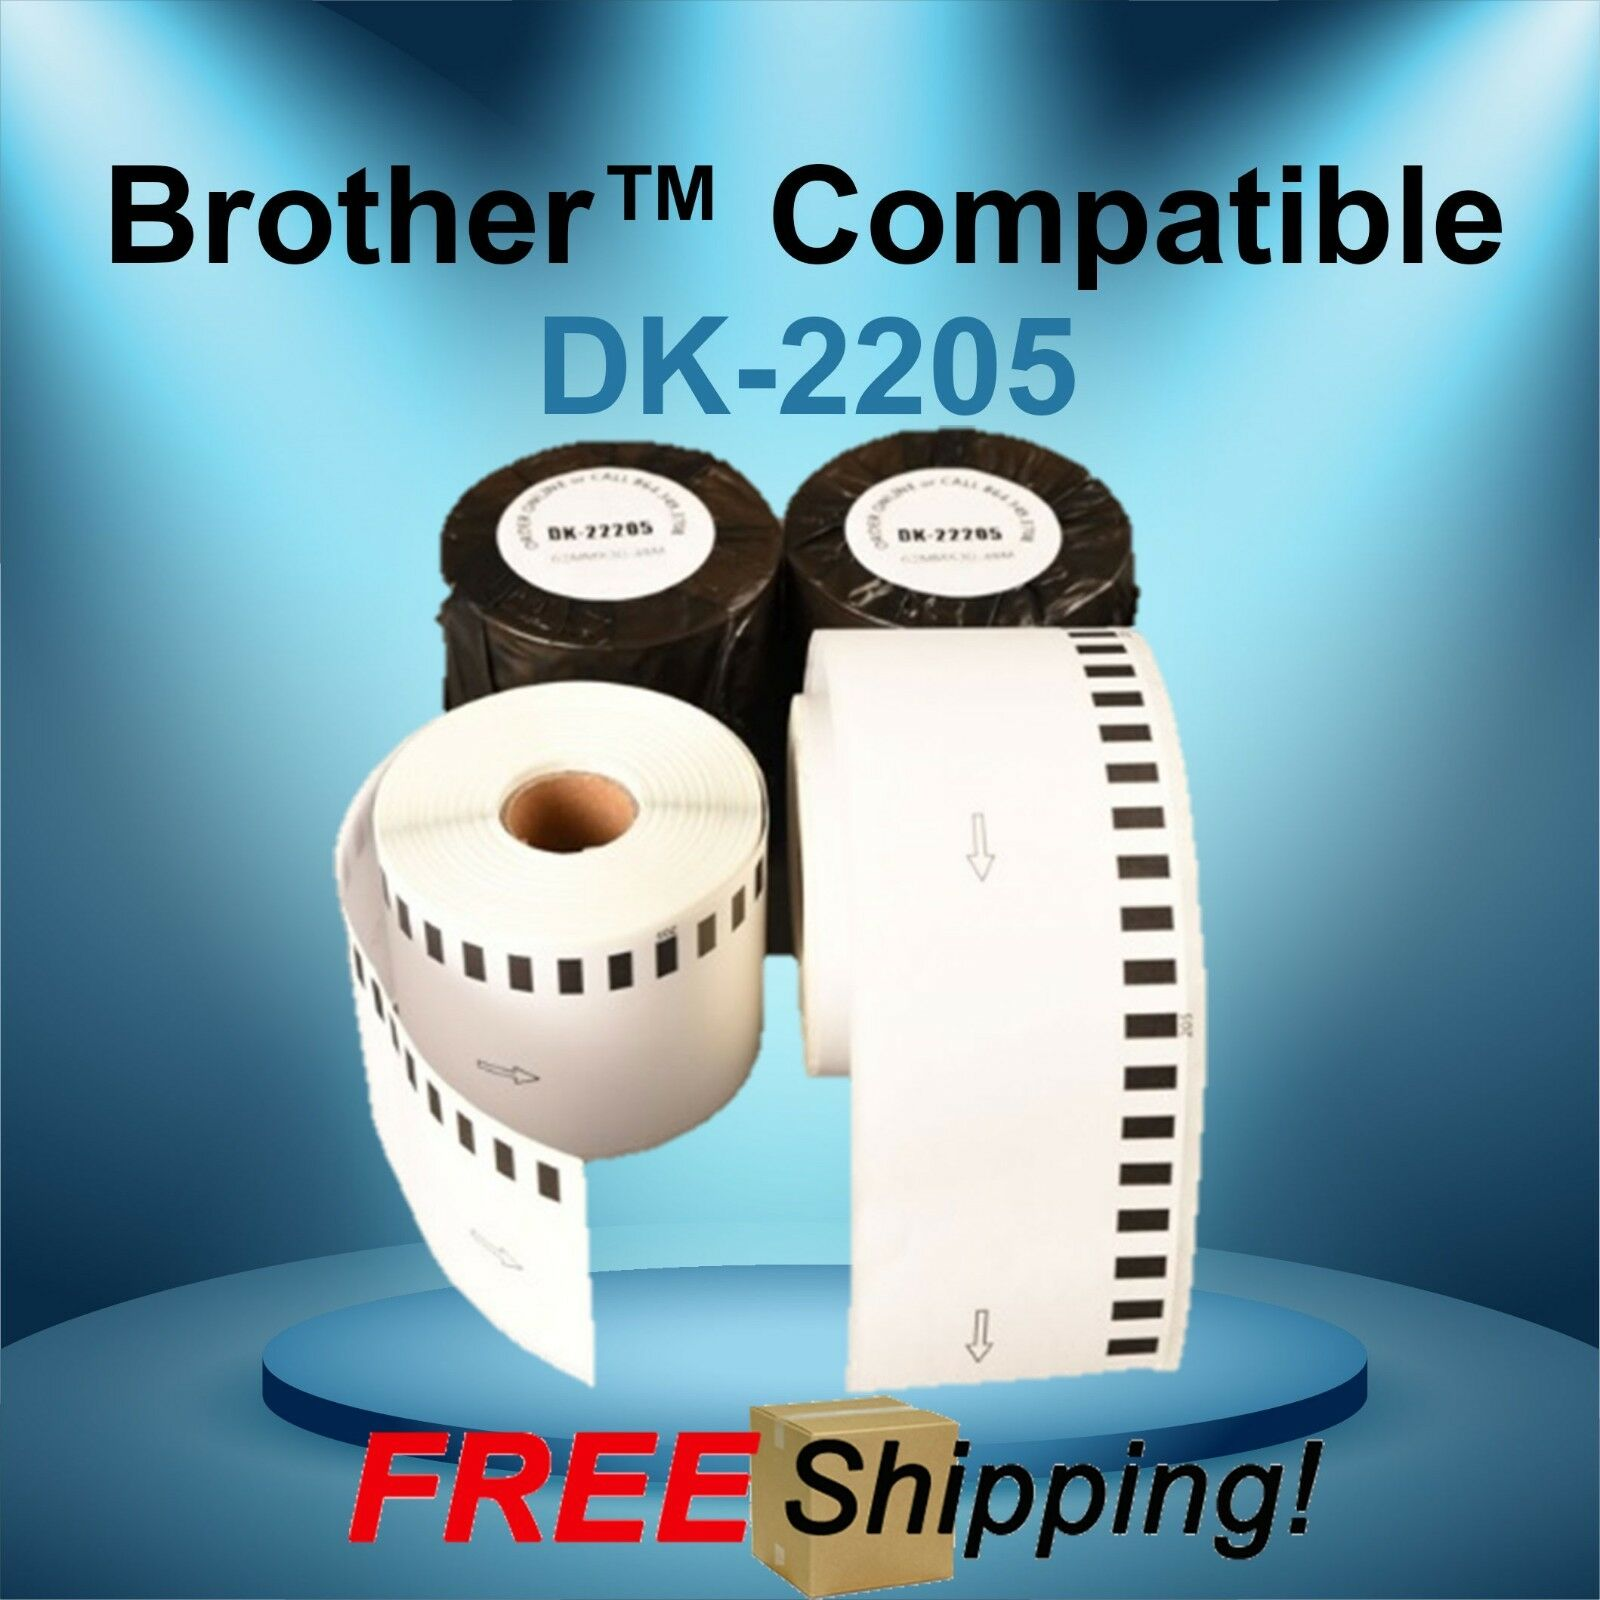 8 Rolls Labels123 Brand-Compatible DK-2205 Brother Continuous Labels 1 Frame